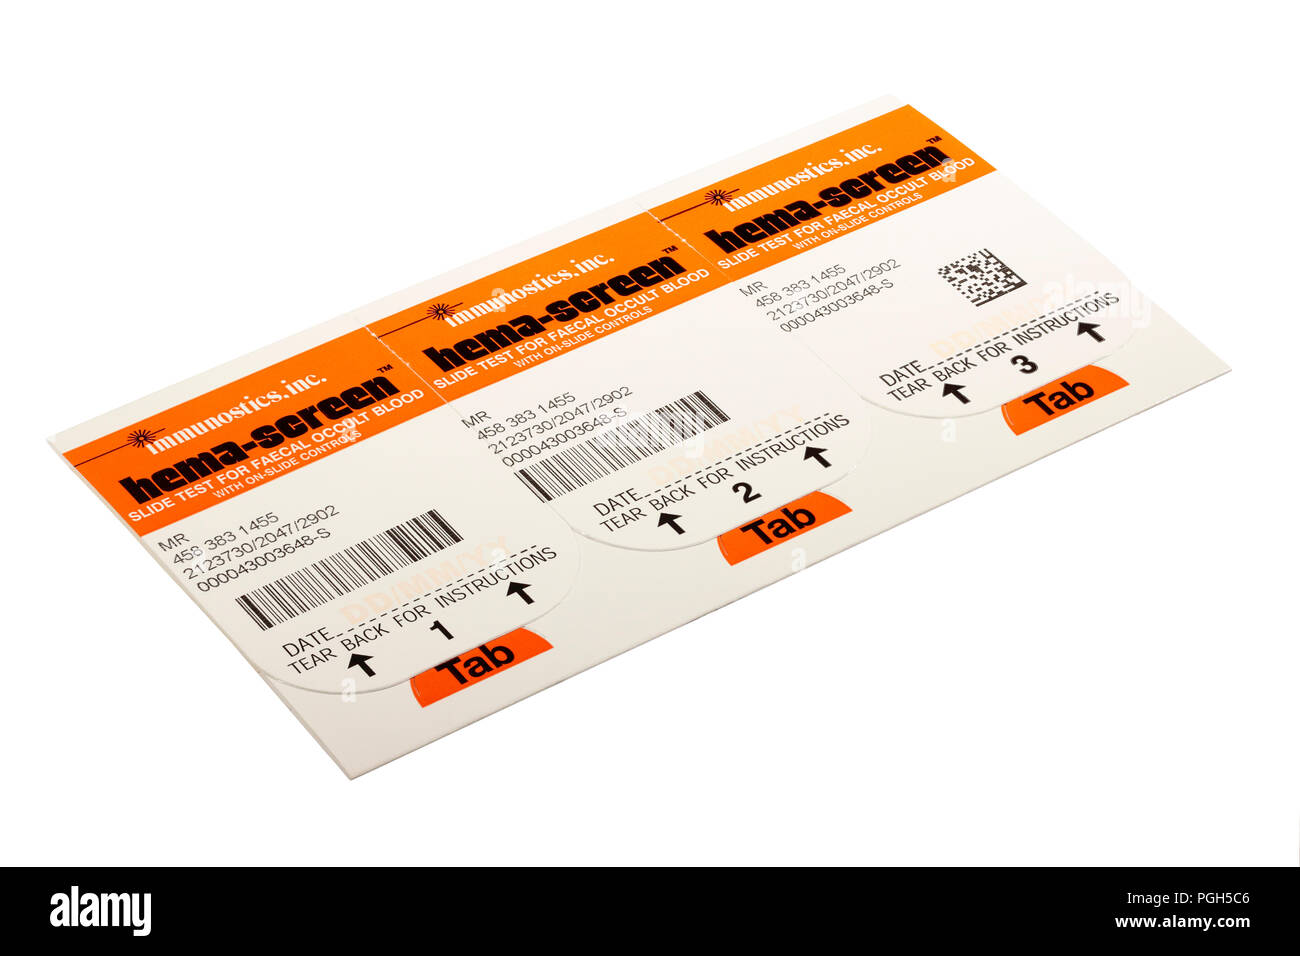 immunostics.inc. hema-screen slide for faecal occult blood bowel cancer screening stool sample card sent out by the NHS every two years to over 60 - Stock Image